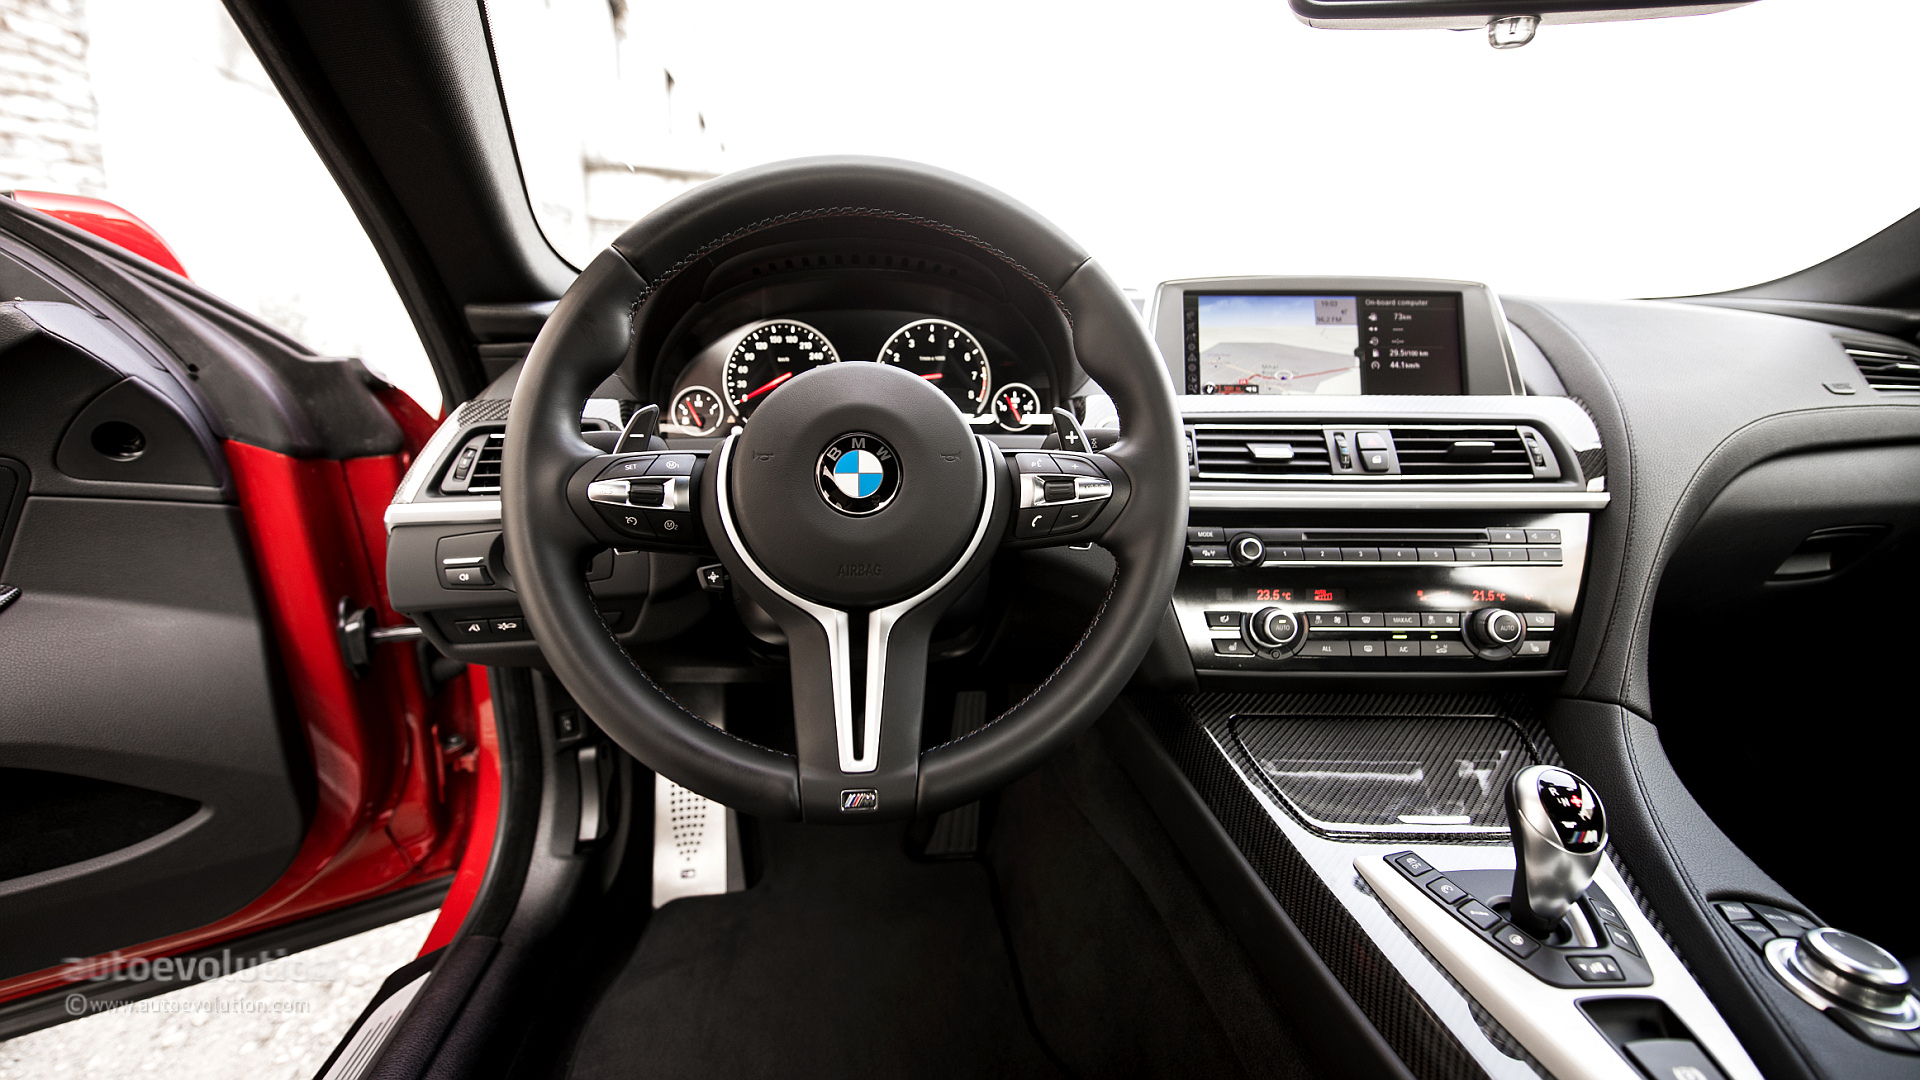 Bmw M Autoevolution Test Drive Photo Gallery